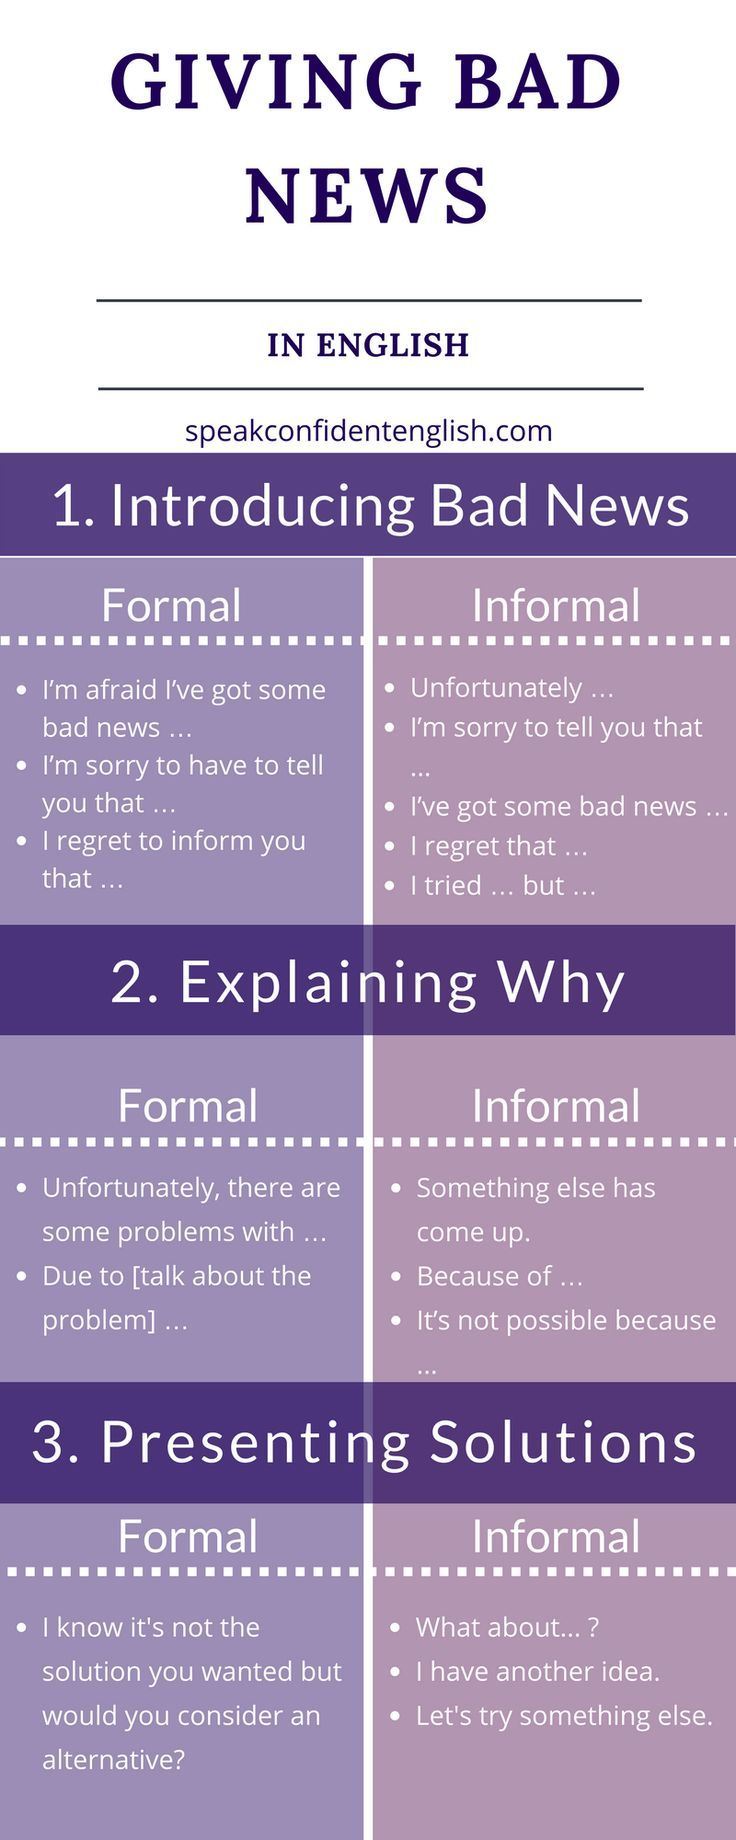 How To Give Bad News In English Bad News A Professional And News